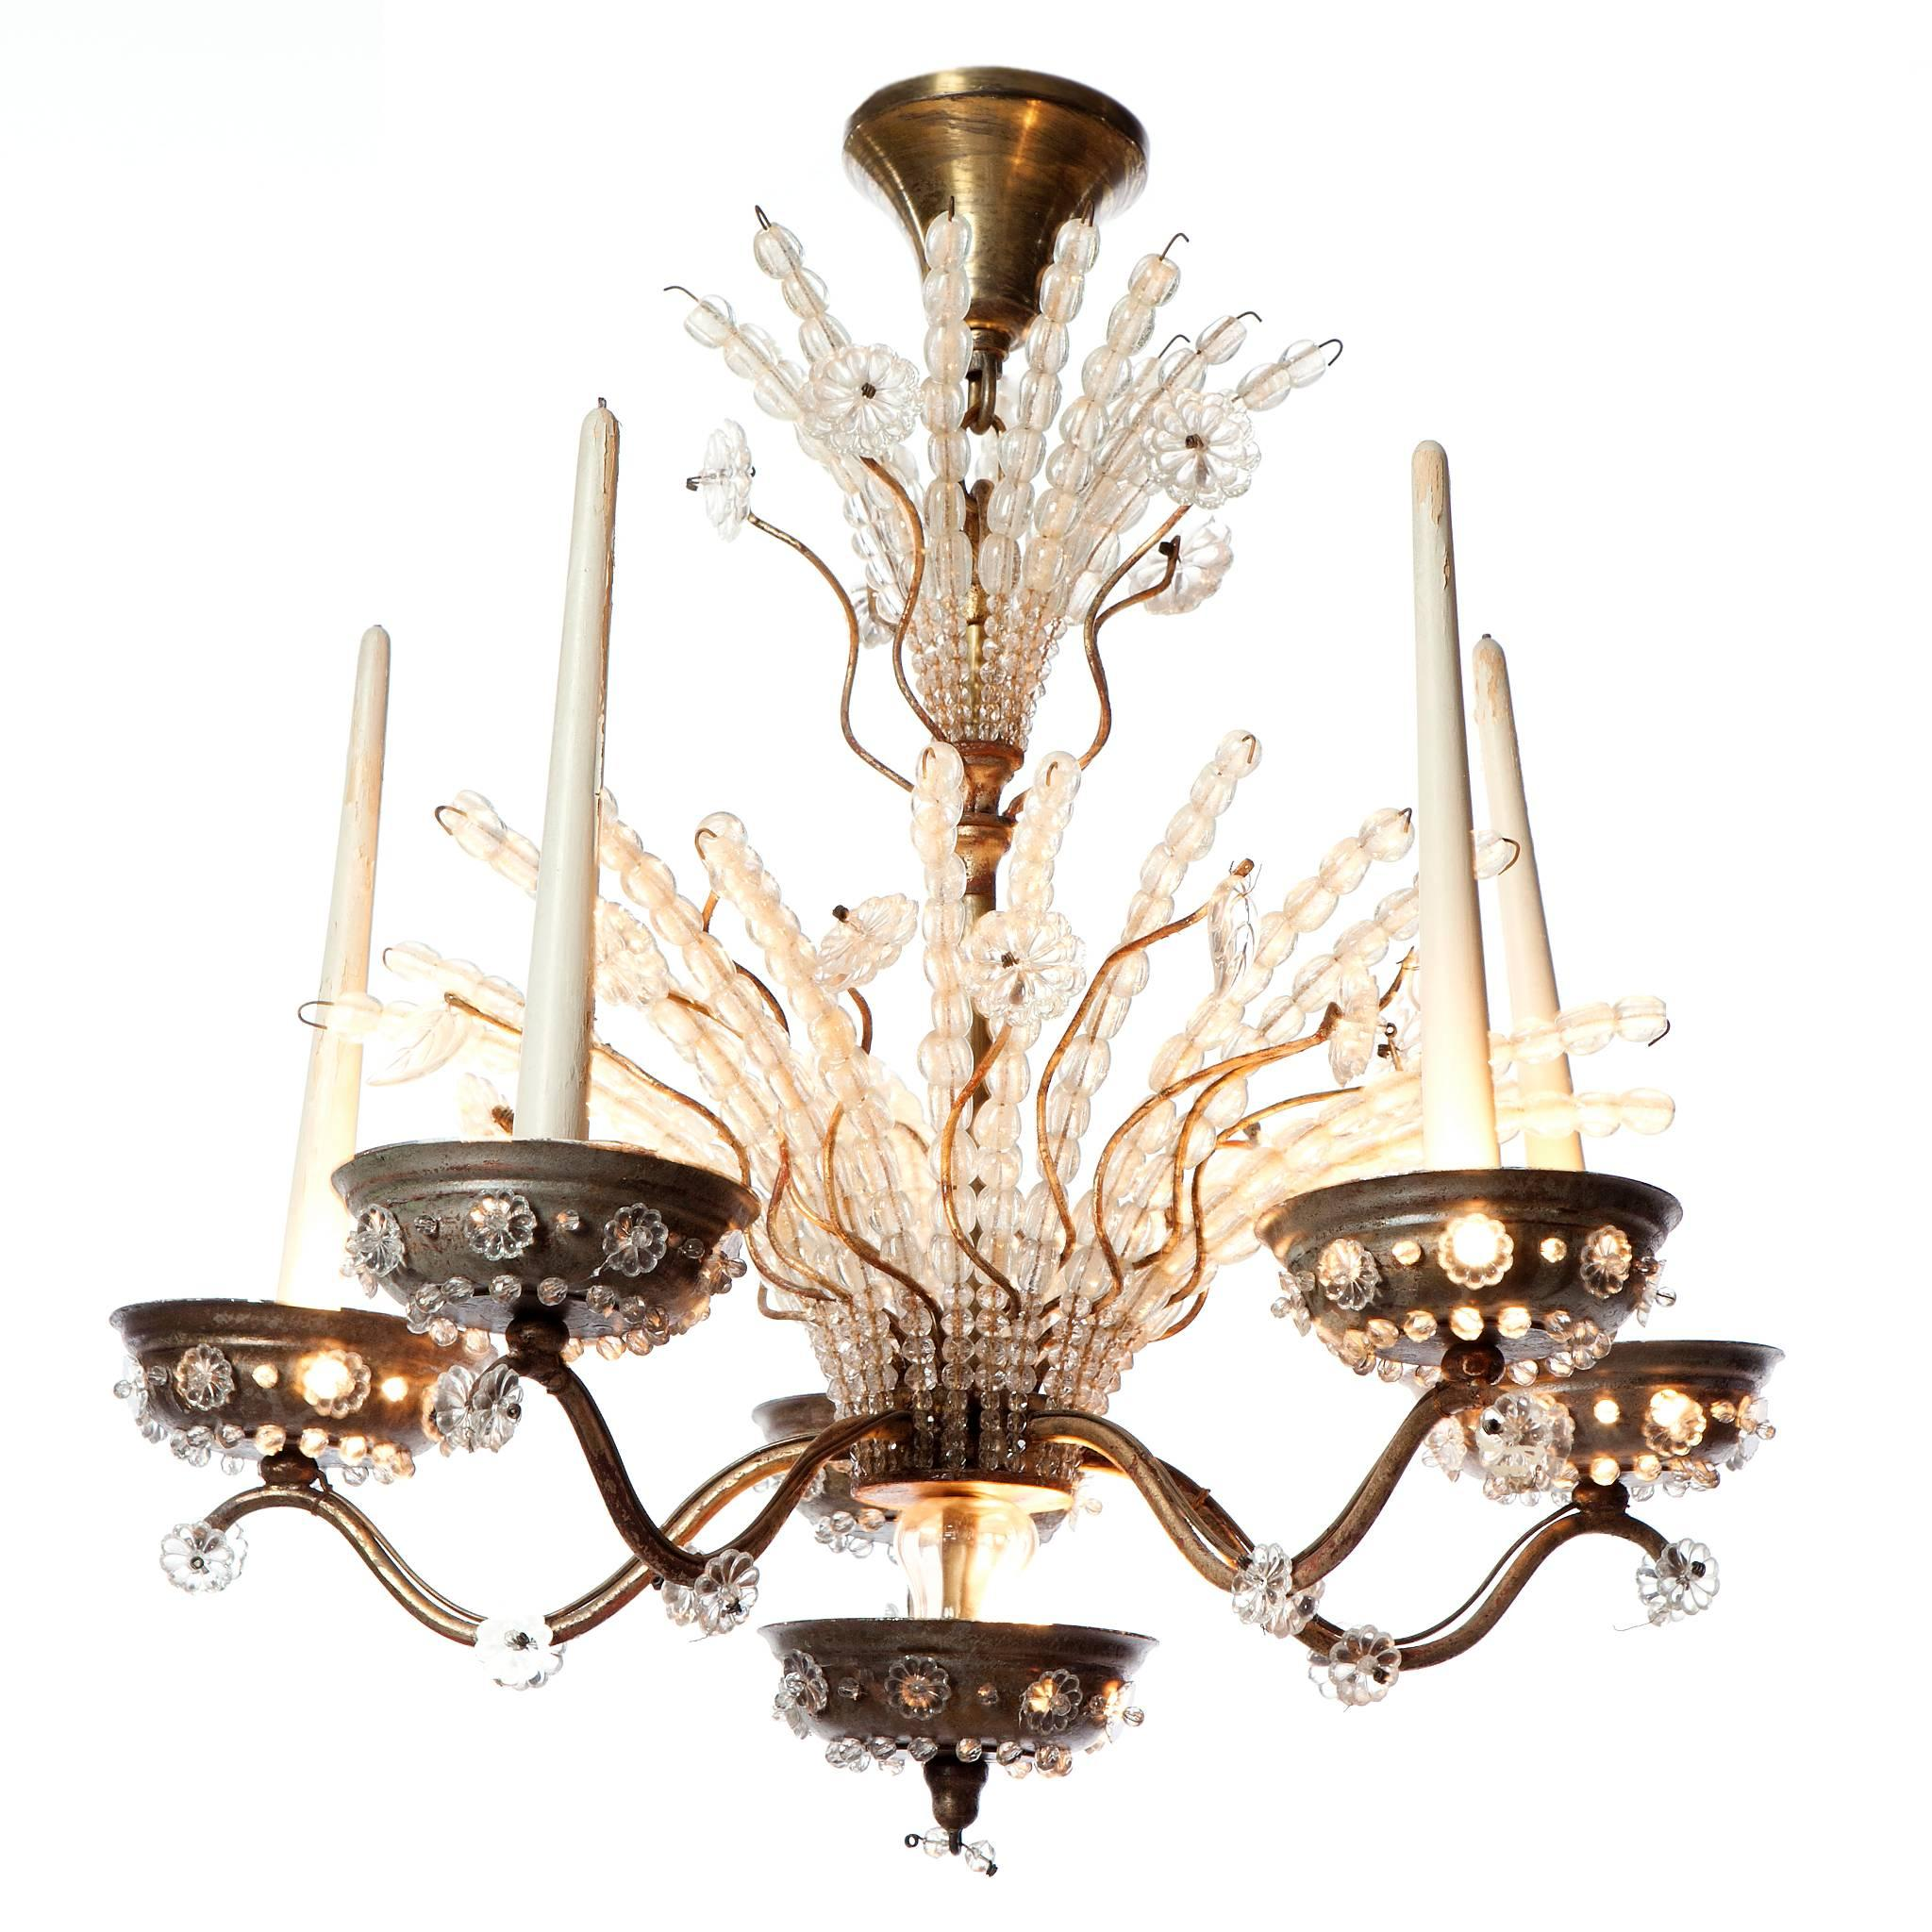 1920s Ten-Light Silver Plated and Crystal Chandelier attributed to Maison Bagues